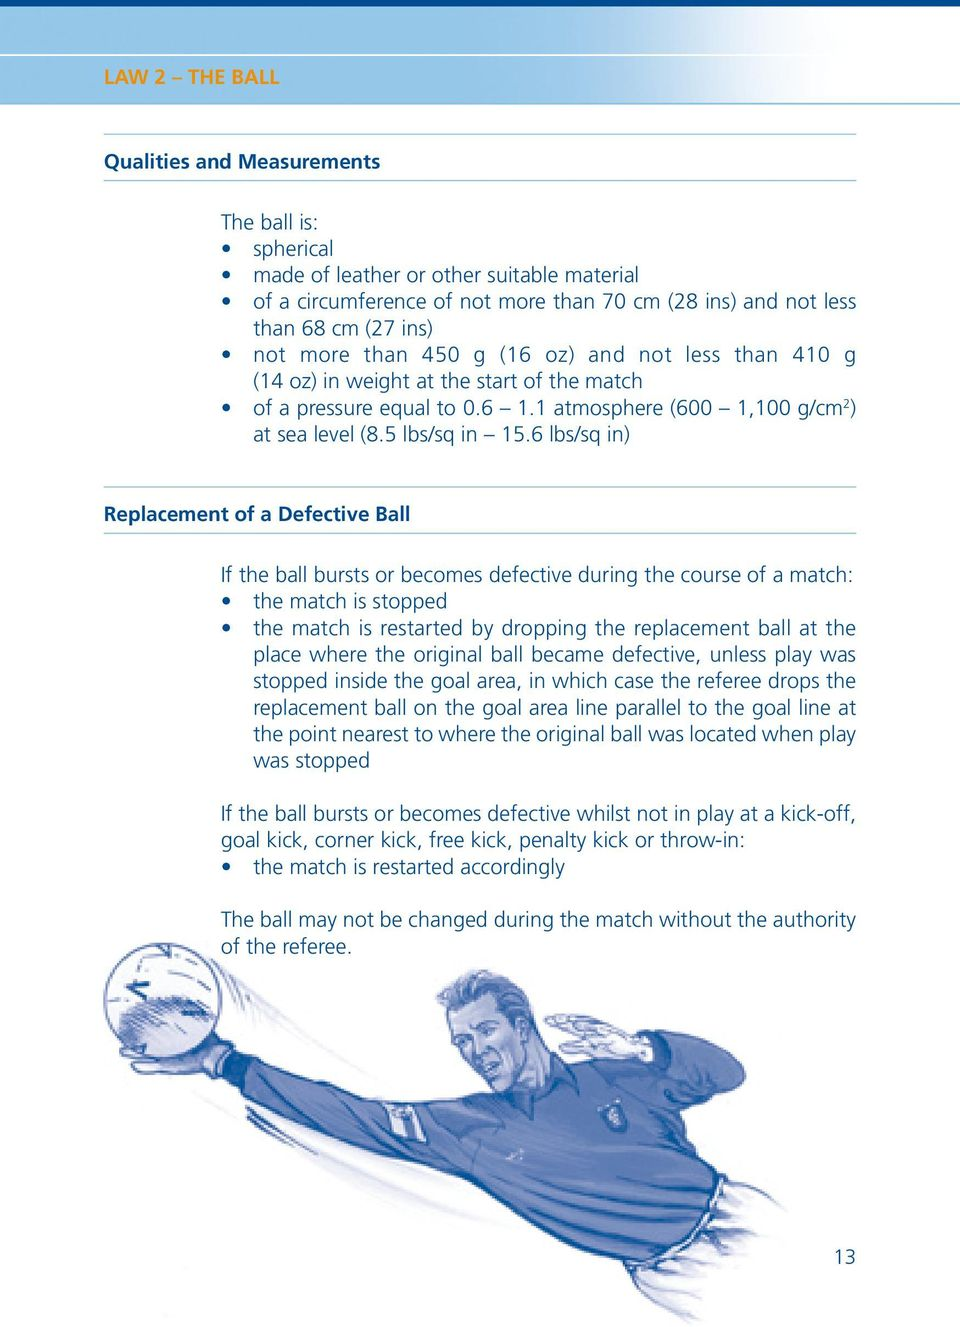 6 lbs/sq in) Replacement of a Defective Ball If the ball bursts or becomes defective during the course of a match: the match is stopped the match is restarted by dropping the replacement ball at the